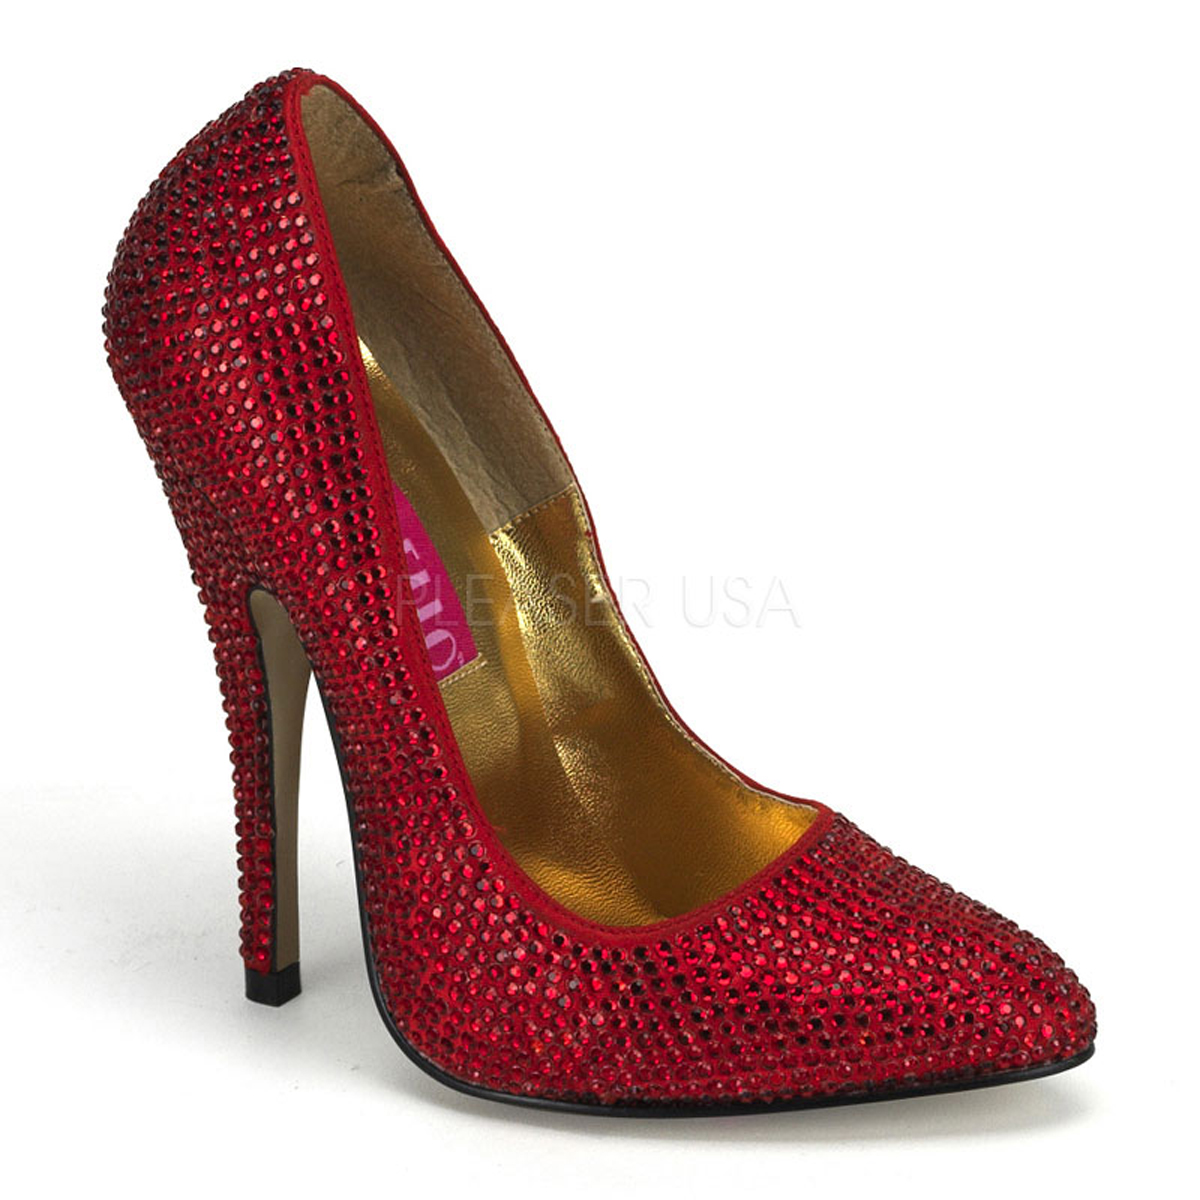 Image of Luxus Strass Pumps, SCANDAL-620R, Bordello, Rot